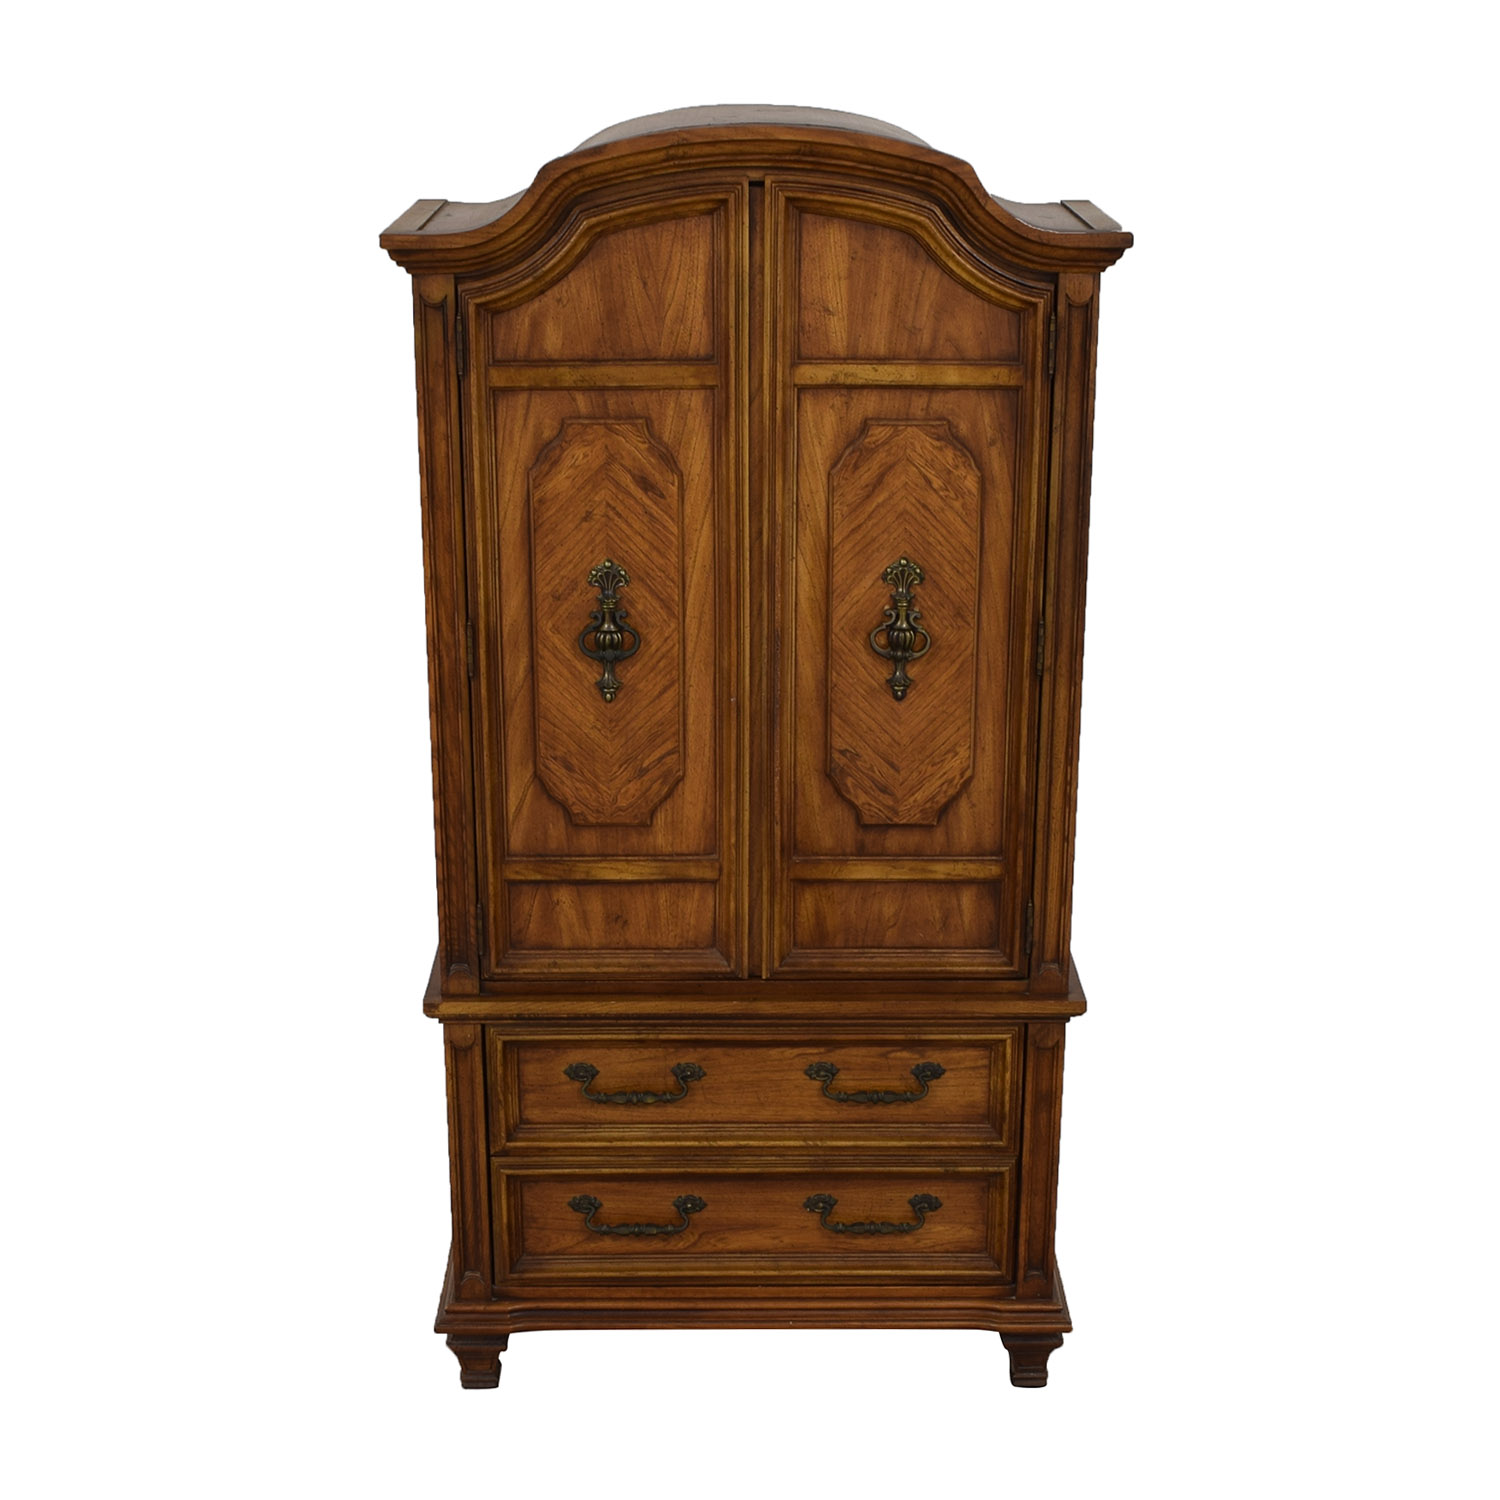 Albe Furniture Albe Furniture Five-Drawer Cothing Armoire on sale